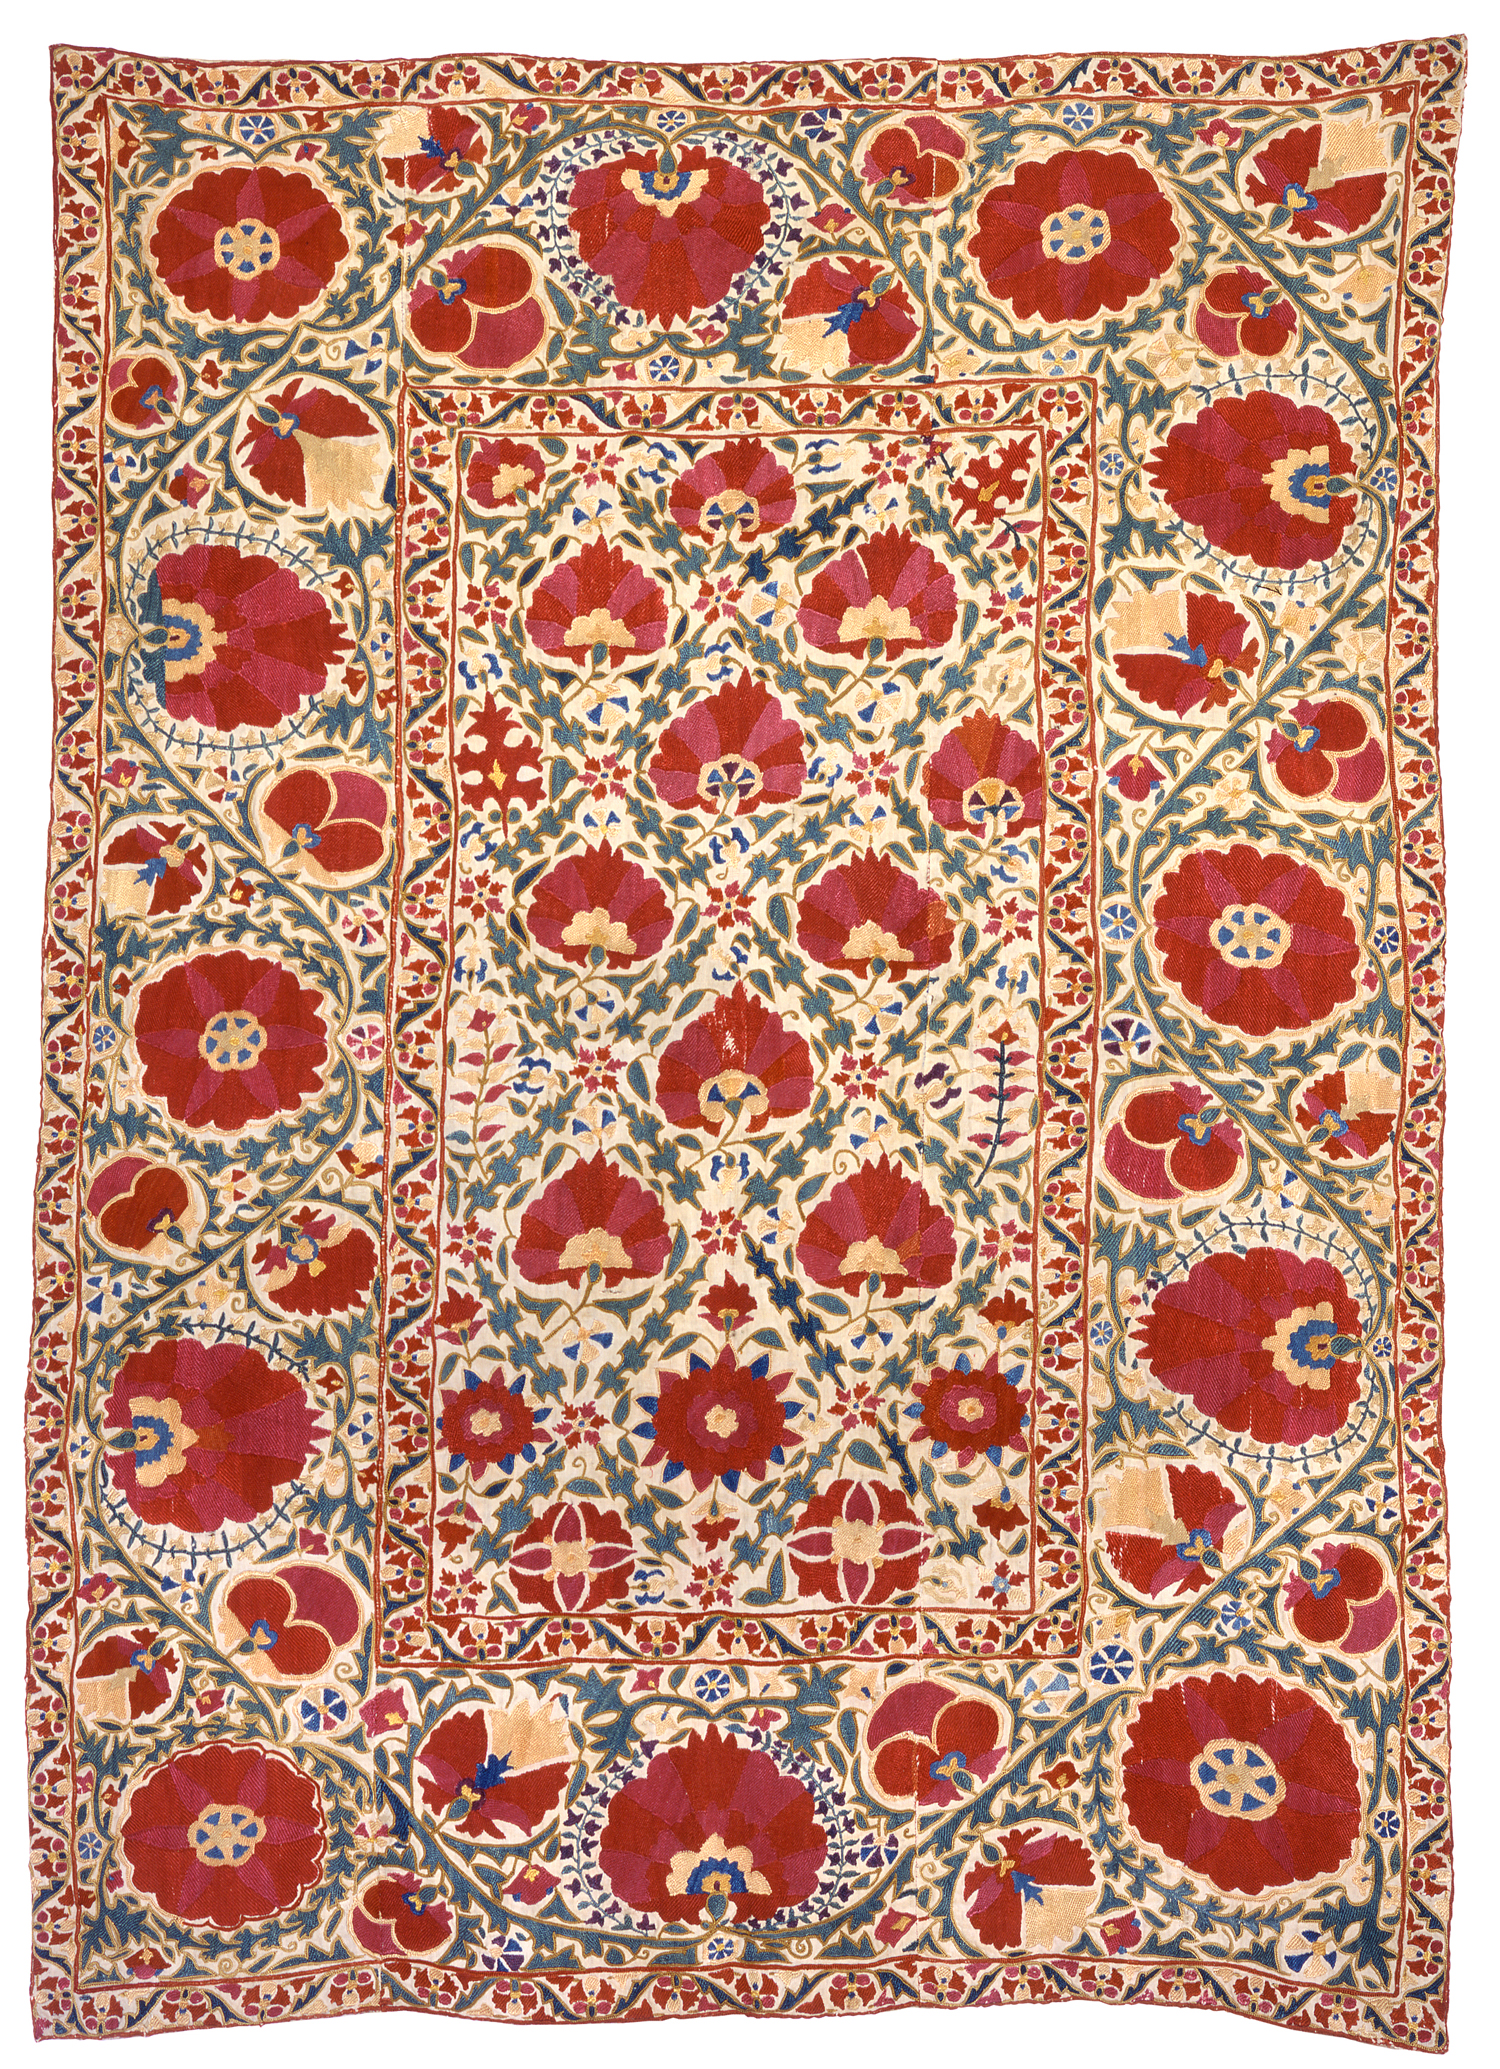 Bukhara suzani, Uzbekistan, 18th century. Esther Fitzgerald, London